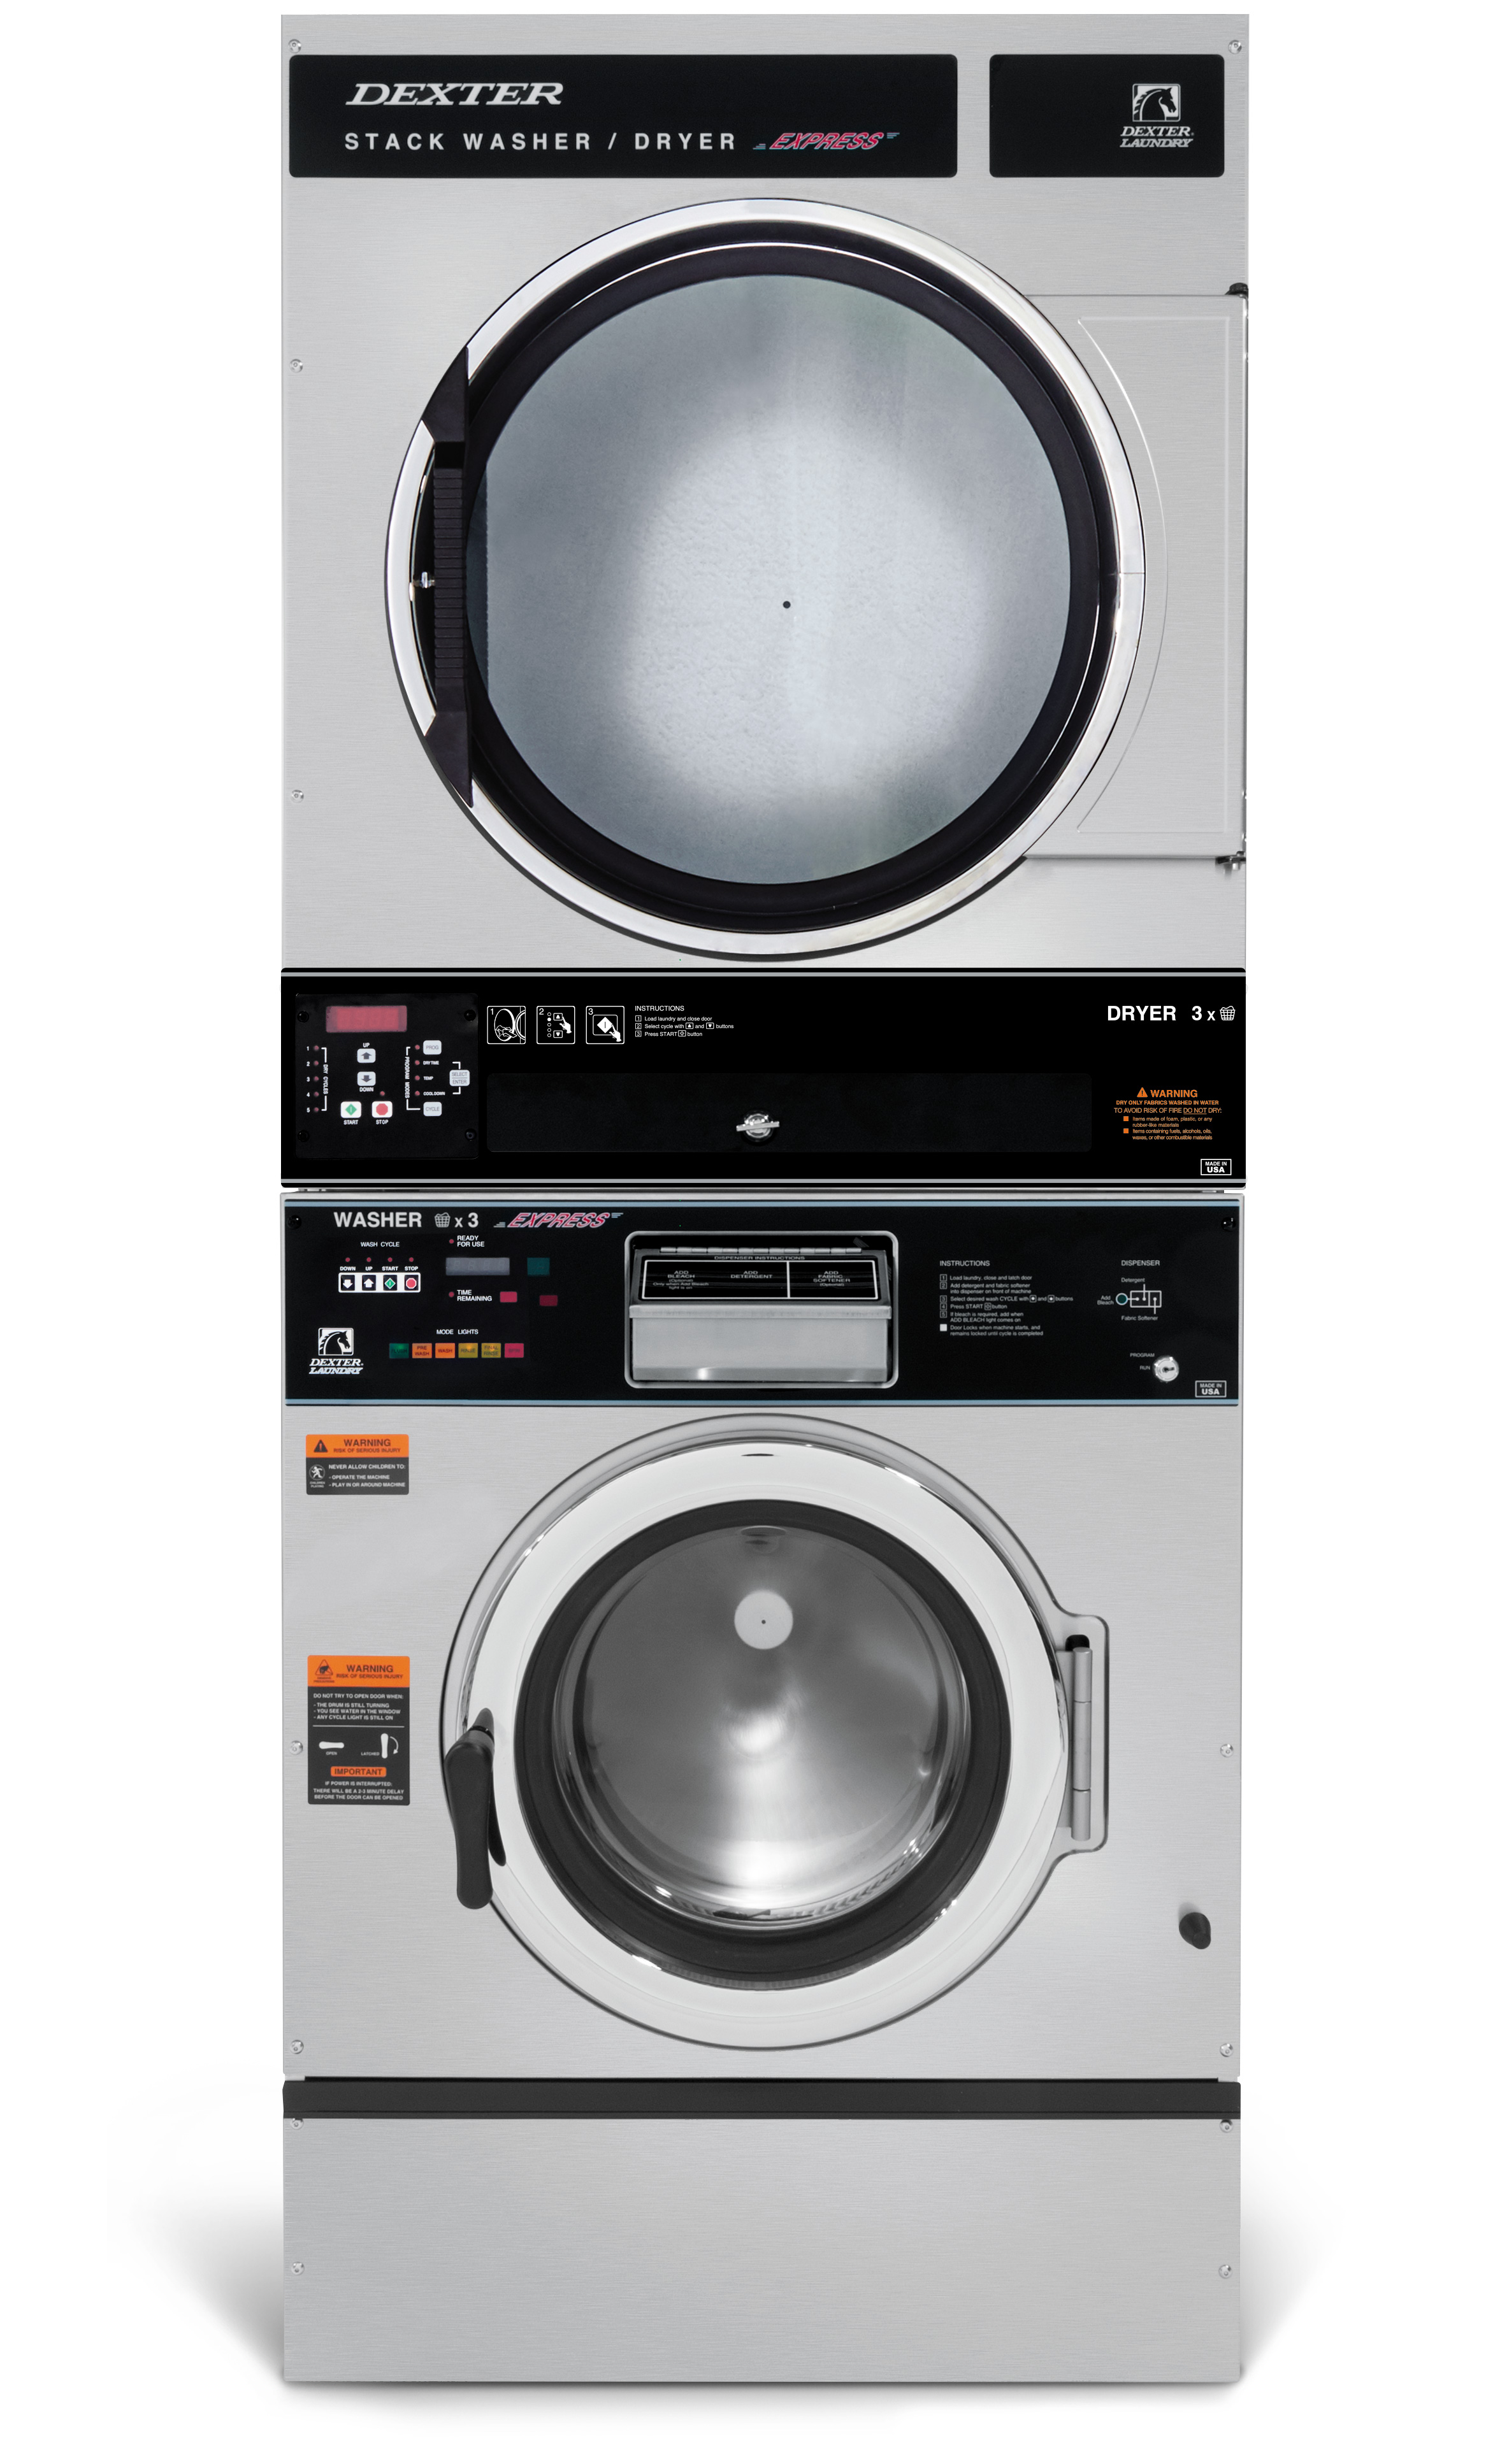 Dexter T-450 Stack Washer Dryer 6 Cycle Product Image